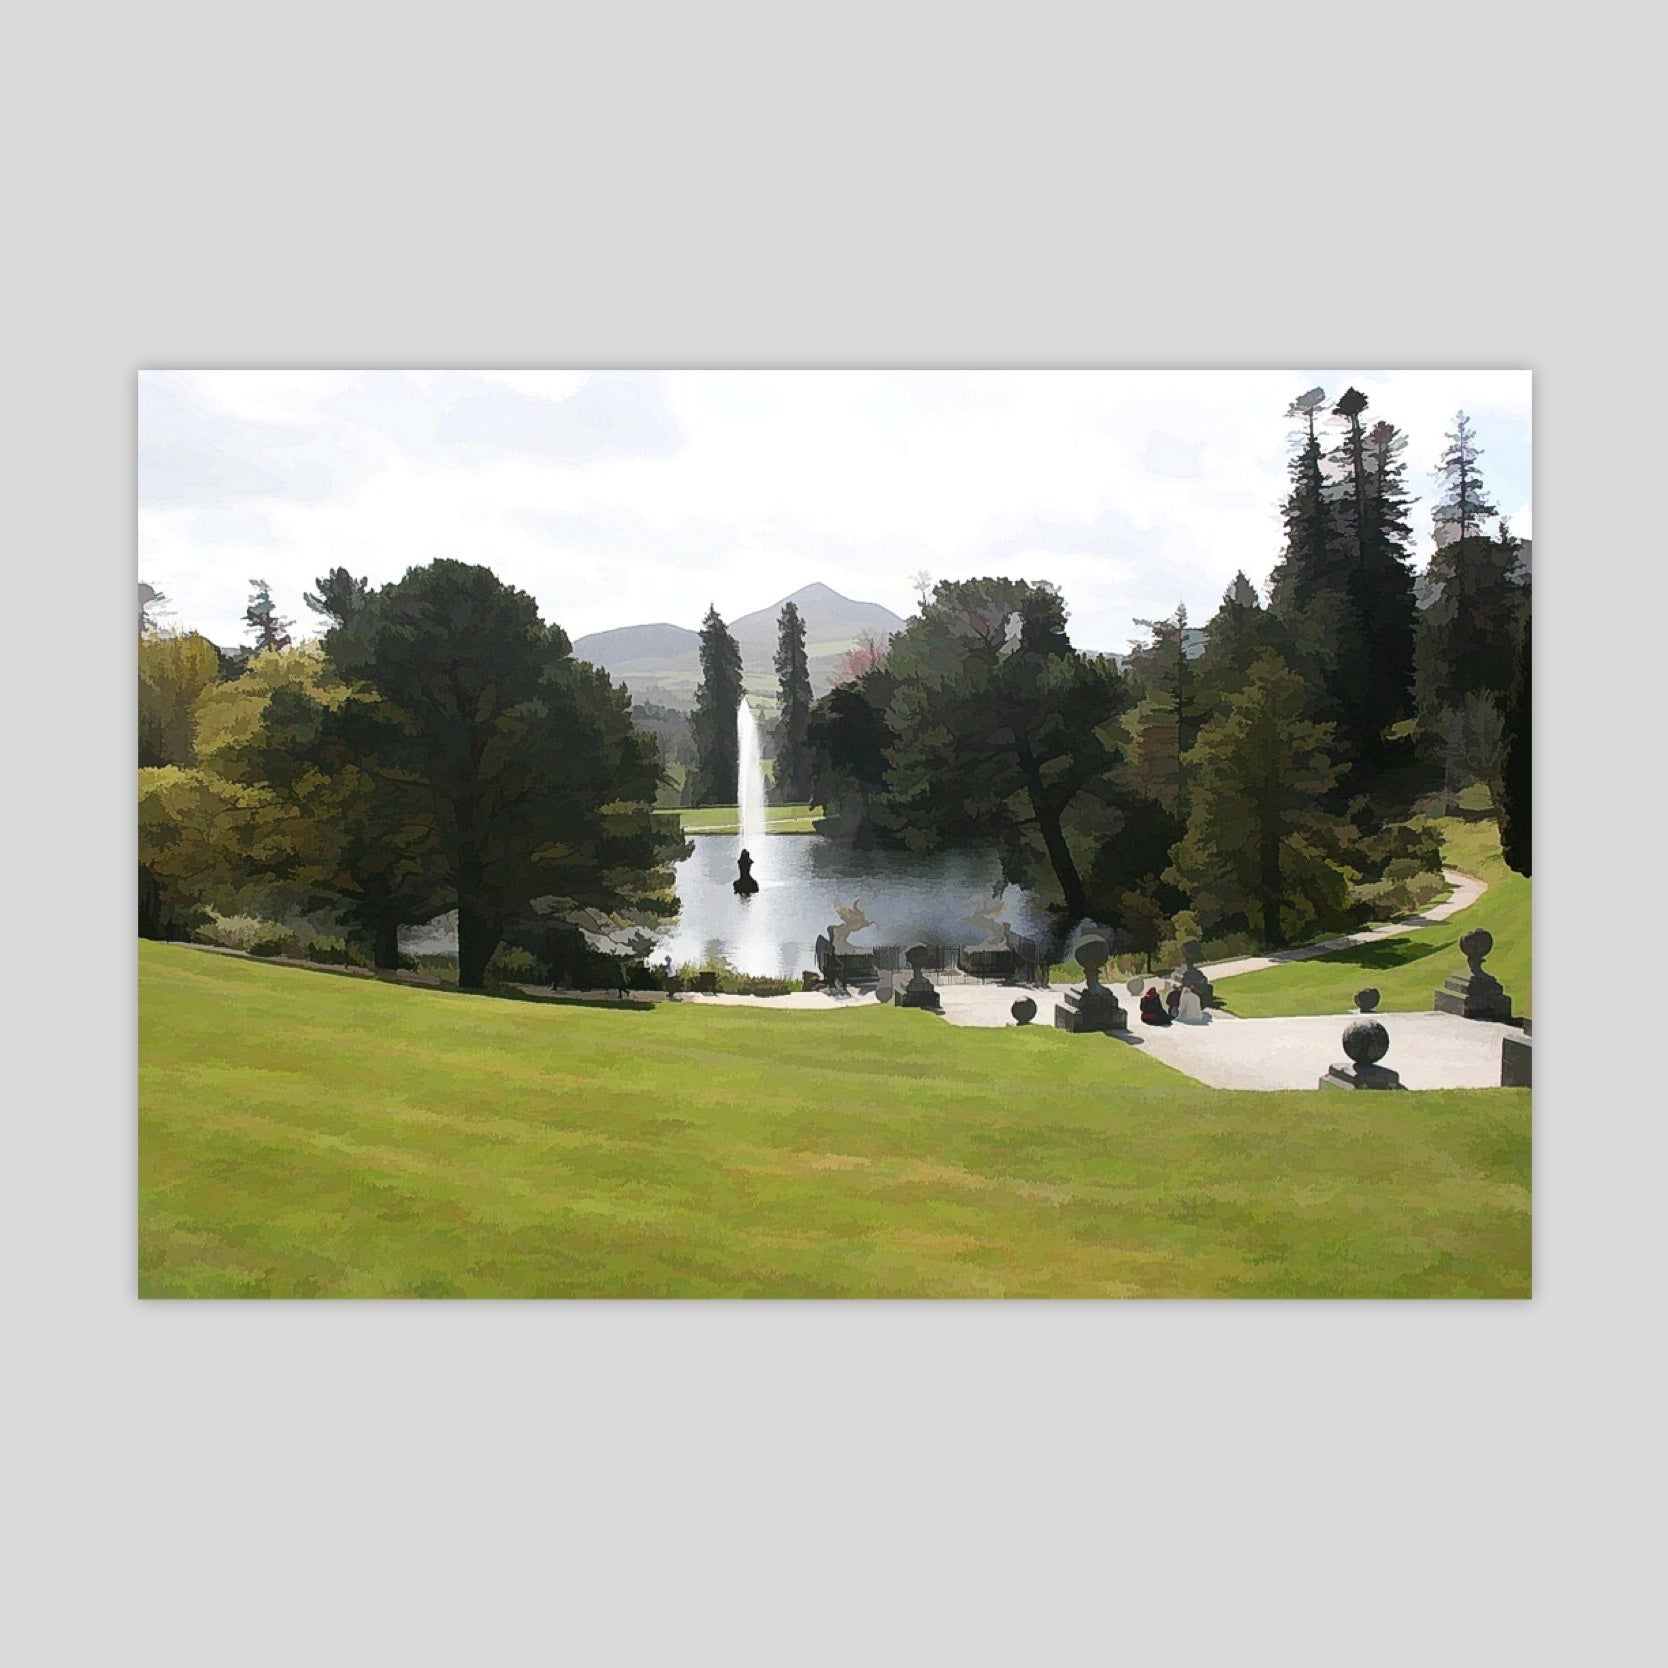 Powerscourt Gardens 2 (3129R-M3)